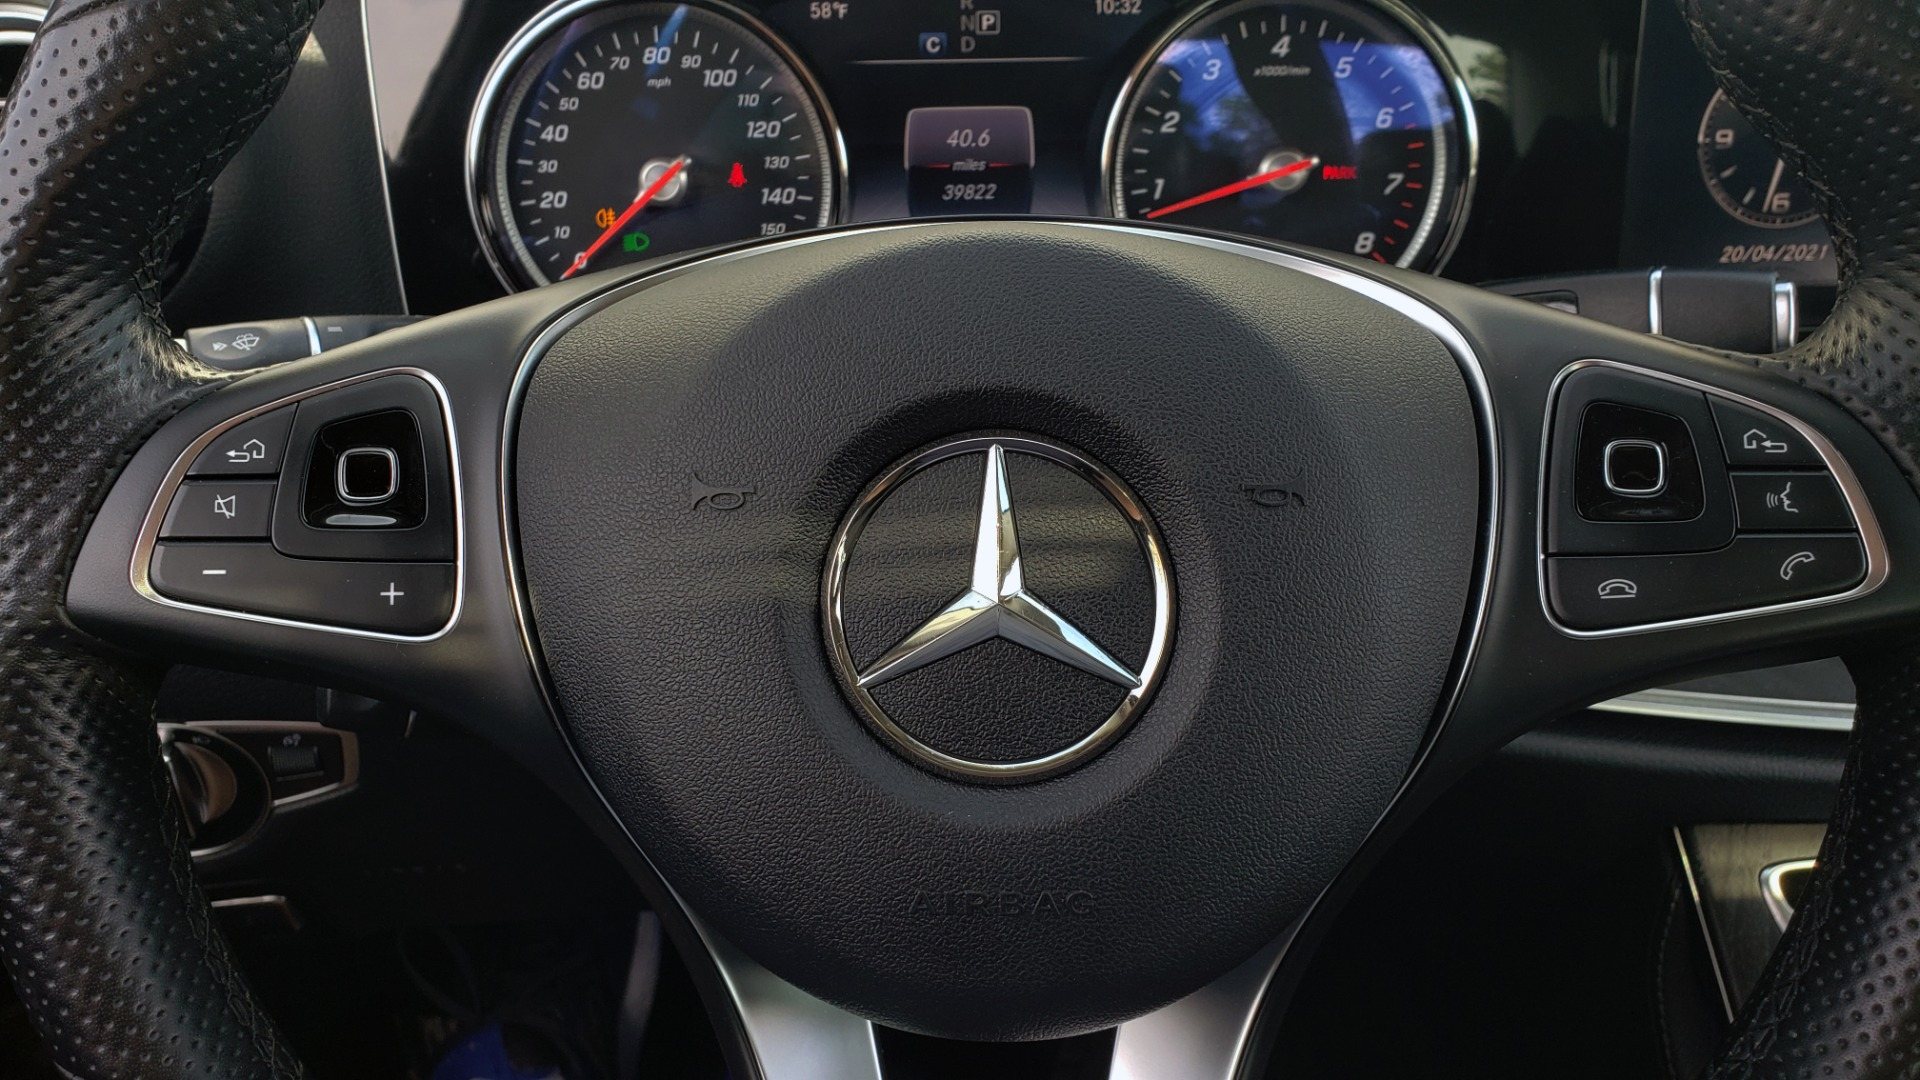 Used 2018 Mercedes-Benz E-CLASS E 300 PREMIUM / 4MATIC / NAV / SUNROOF / H/K SND / REARVIEW for sale $34,195 at Formula Imports in Charlotte NC 28227 37